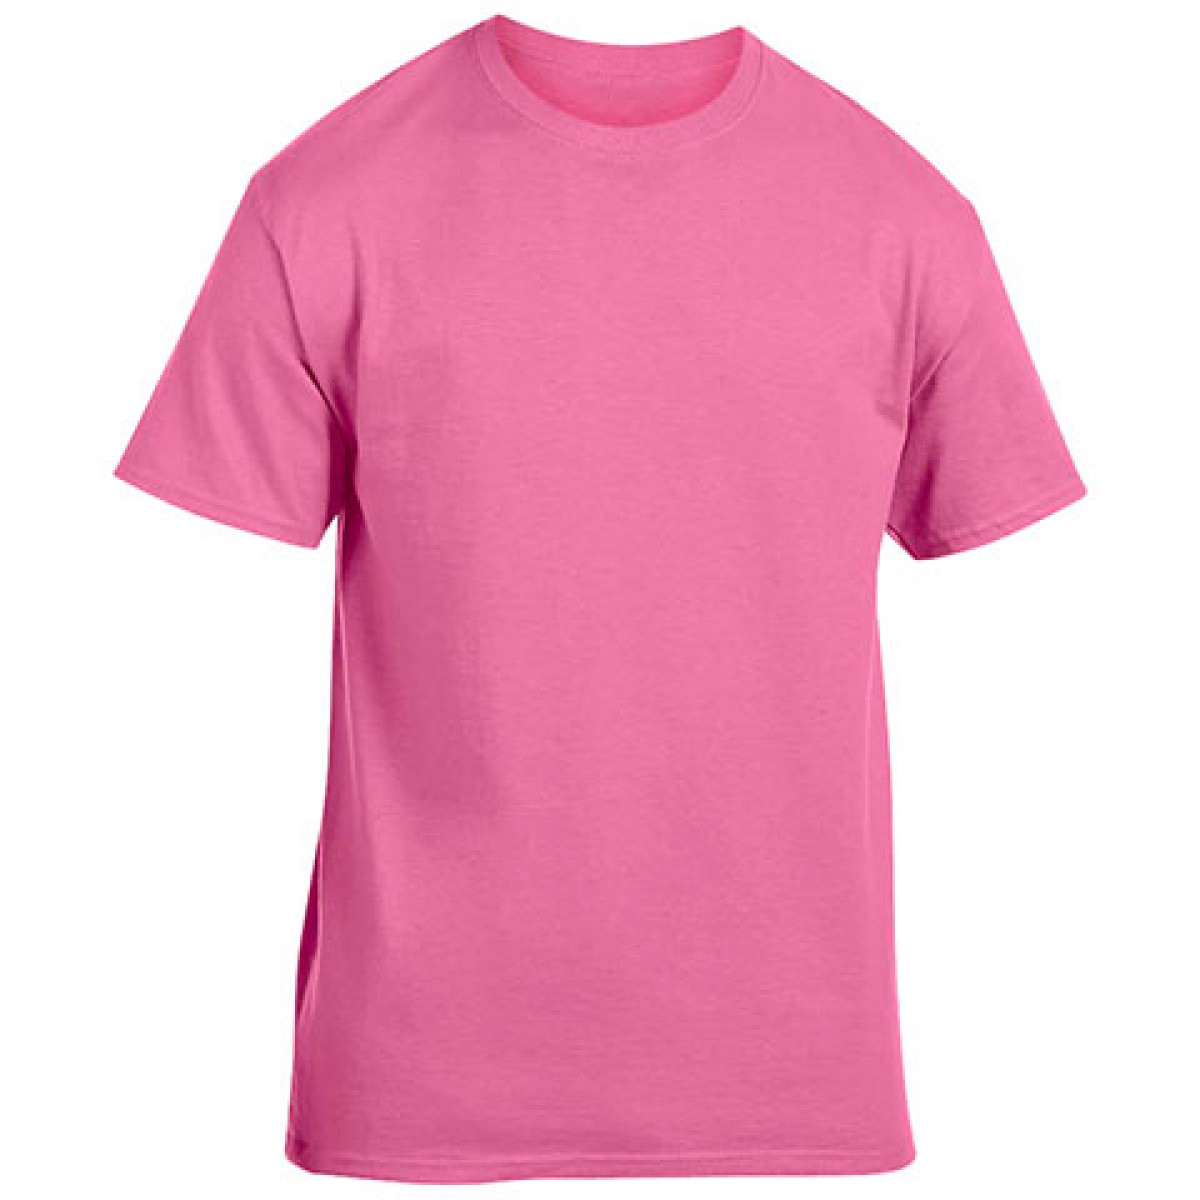 Cotton Short Sleeve T-Shirt-Safety Pink-YS